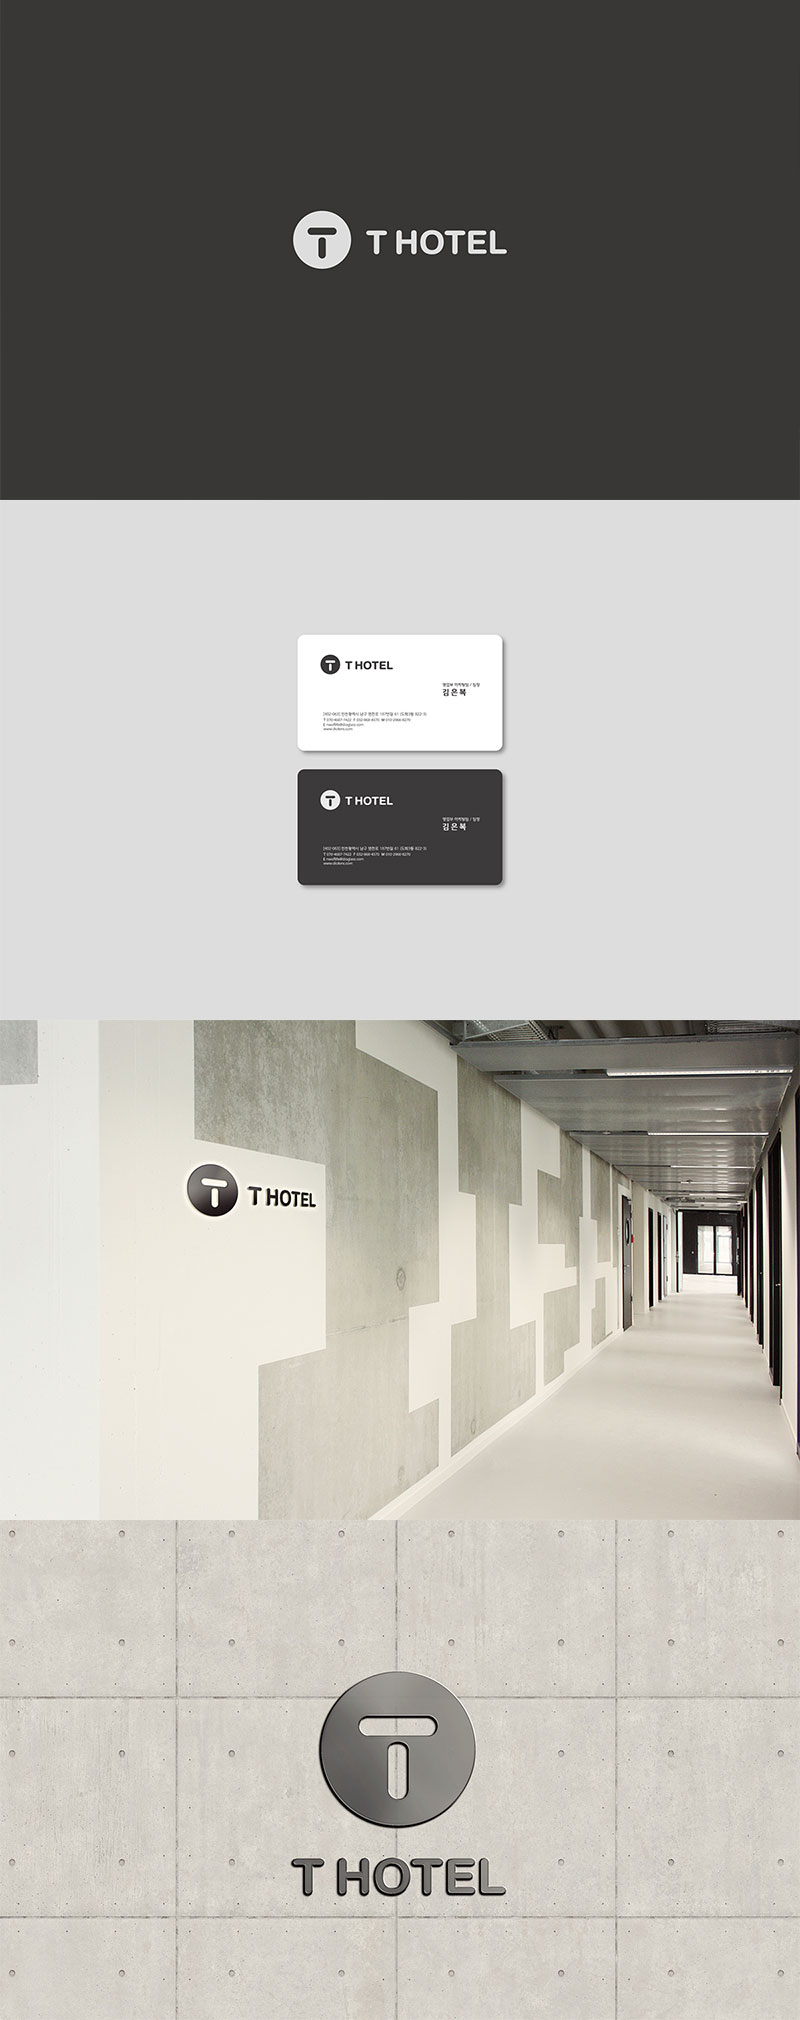 Rodger Villa >> Hotel Branding Design: 30 Creative Examples for Your Inspiration